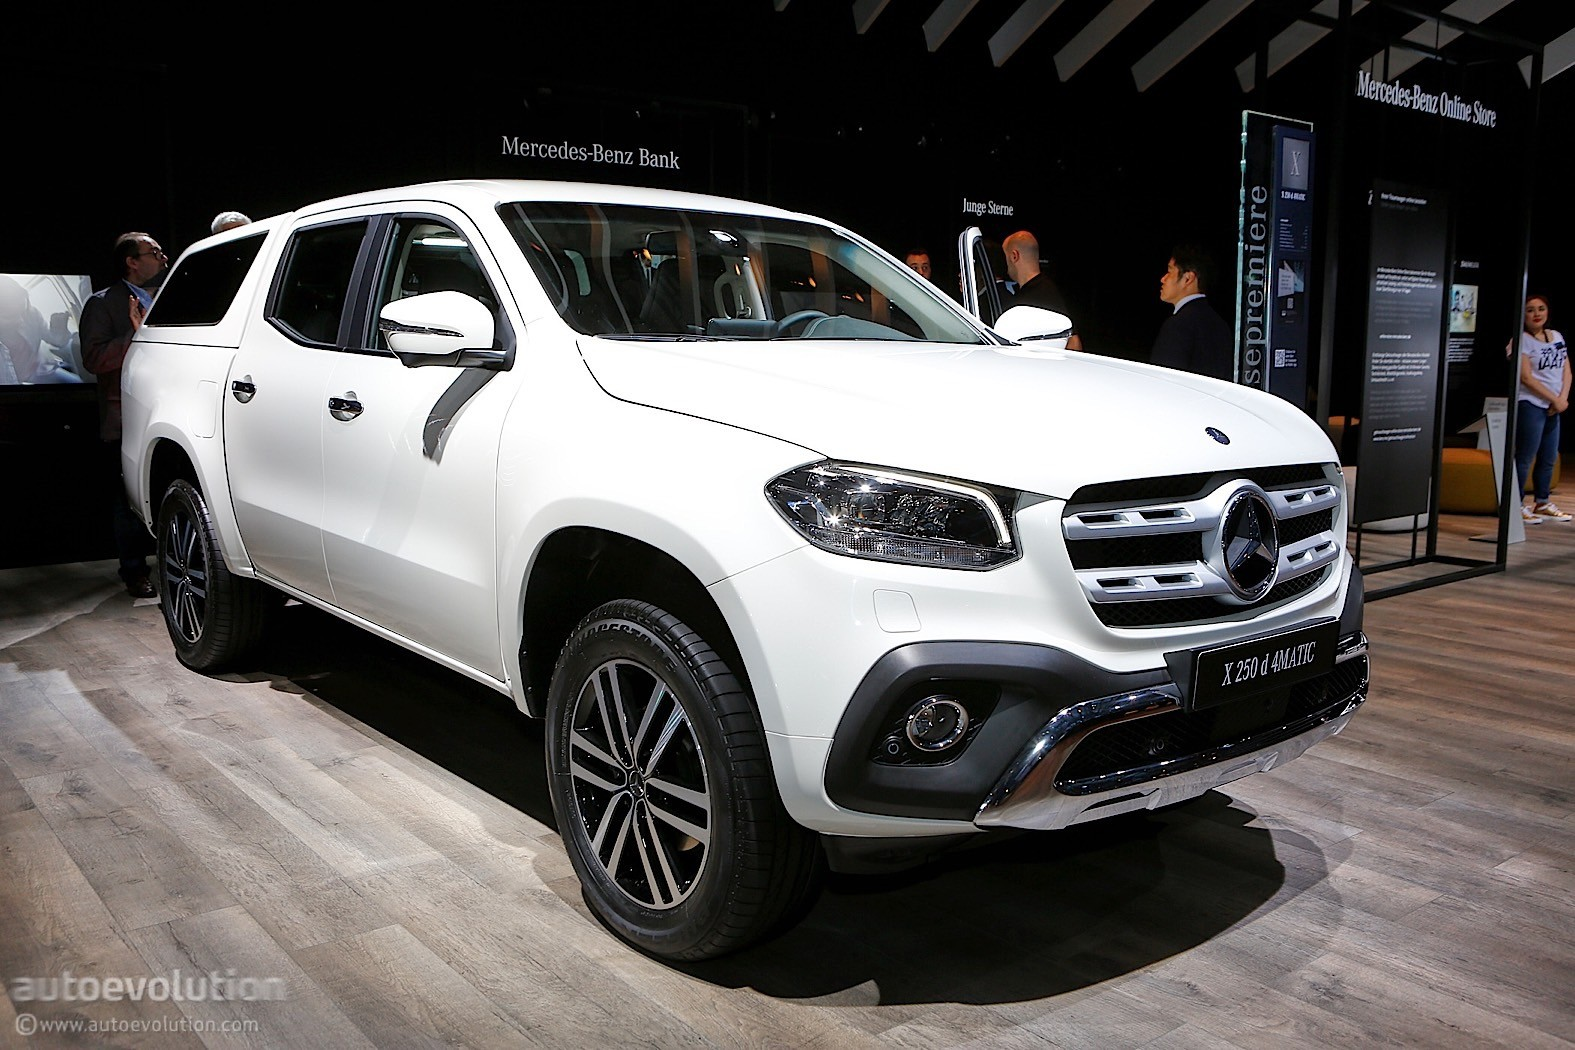 2017 Amg G63 Mercedes Benz >> 2018 Mercedes-Benz X-Class is Like a Caveman in an Expensive Suit at IAA - autoevolution